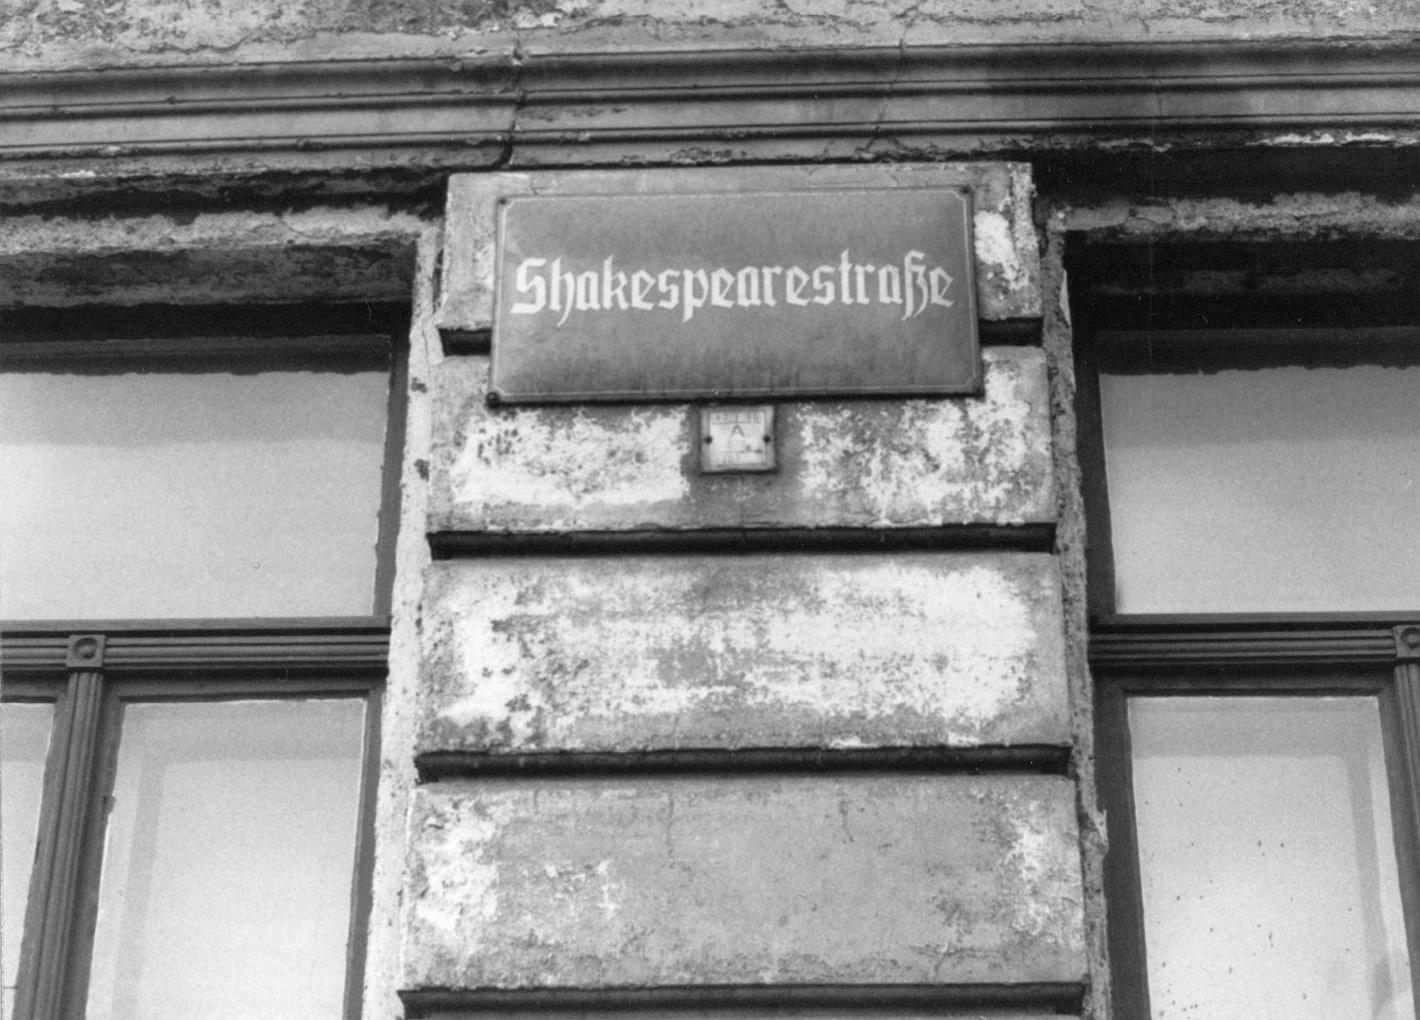 Sign on Shakespearstrasse